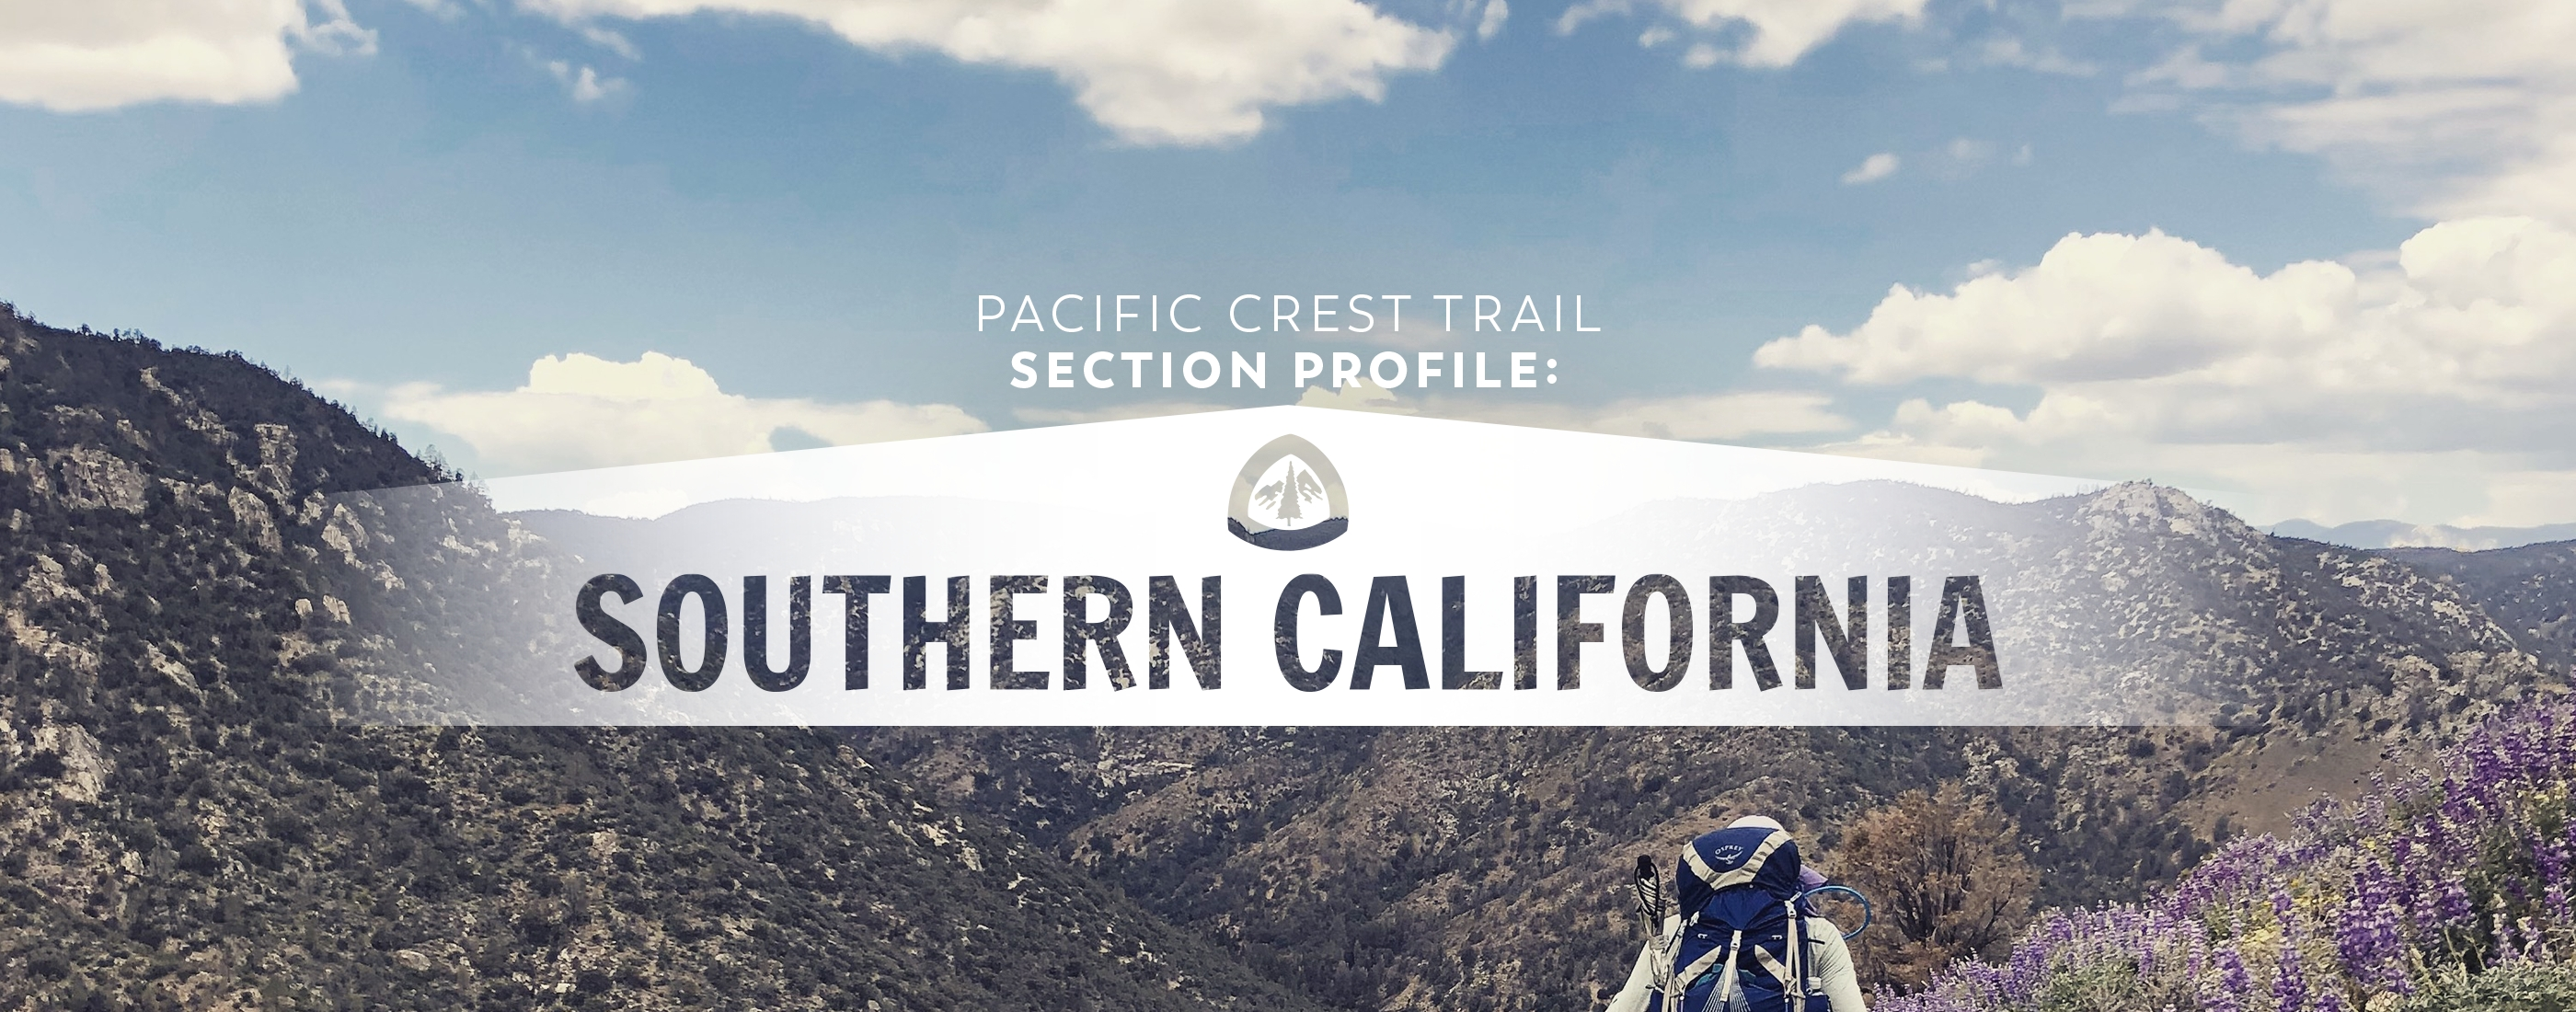 Everything You Need to Know About the PCT Through Southern California